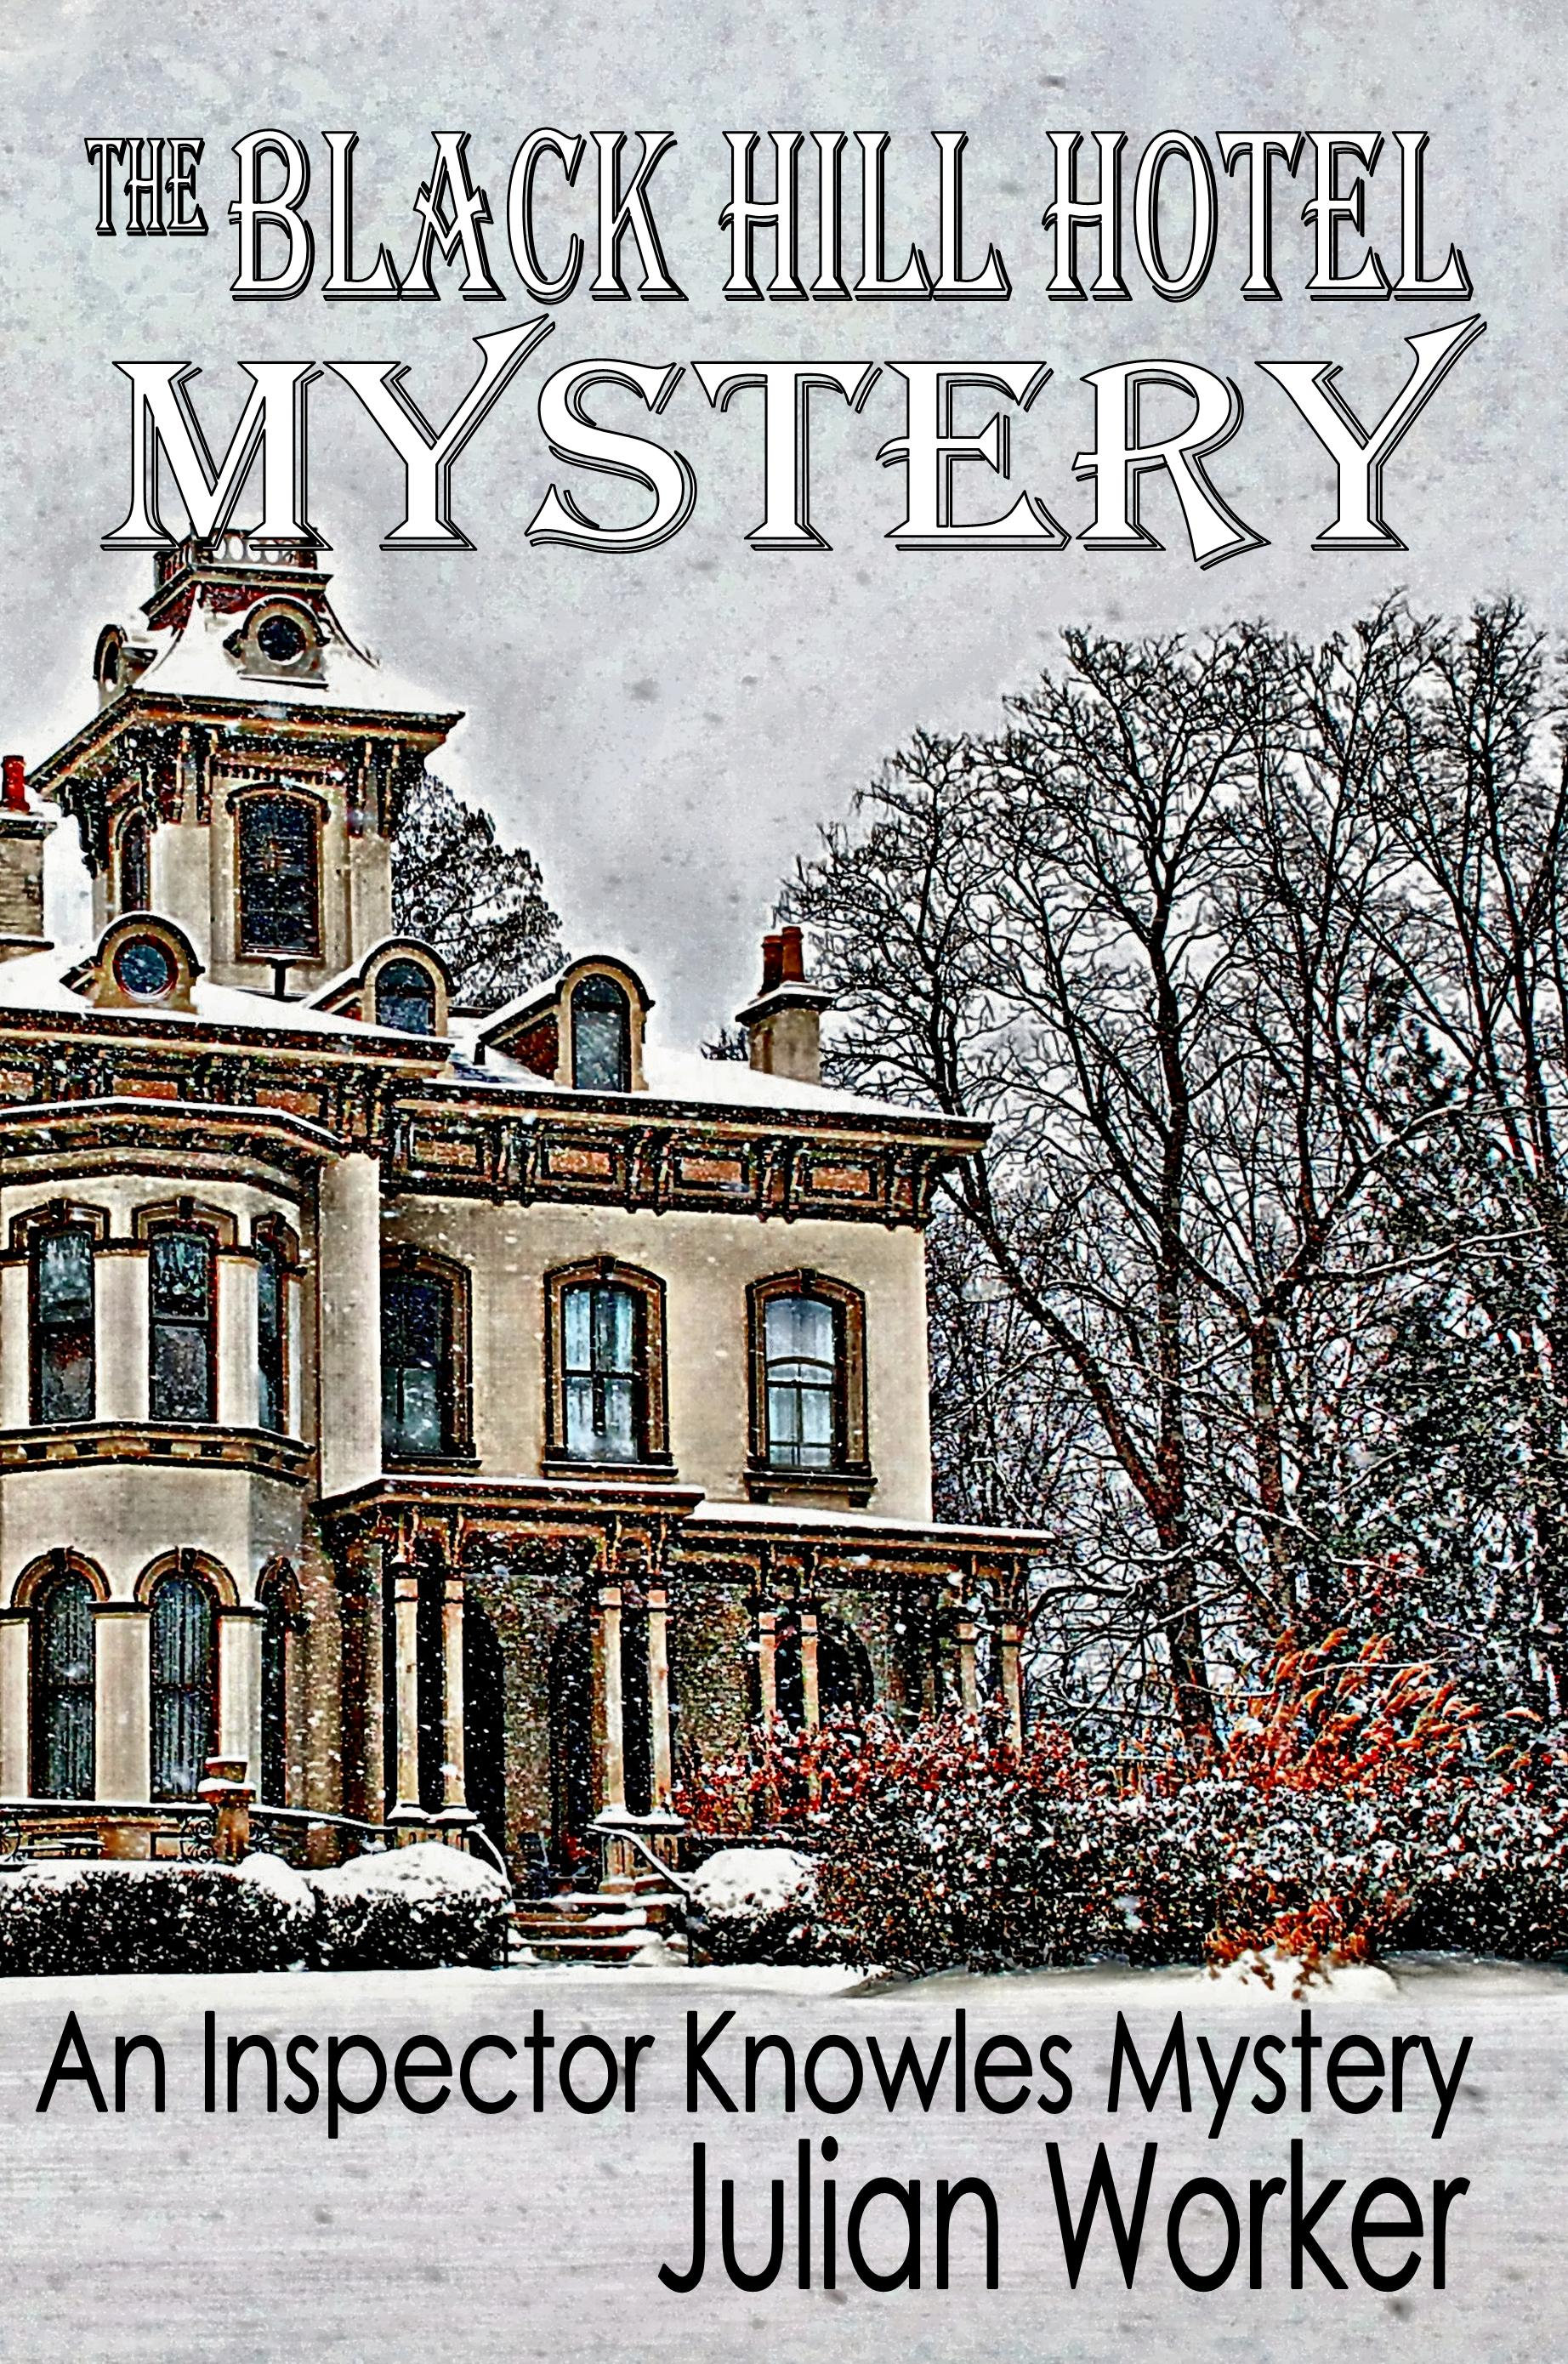 The Black Hill Hotel Mystery – 36